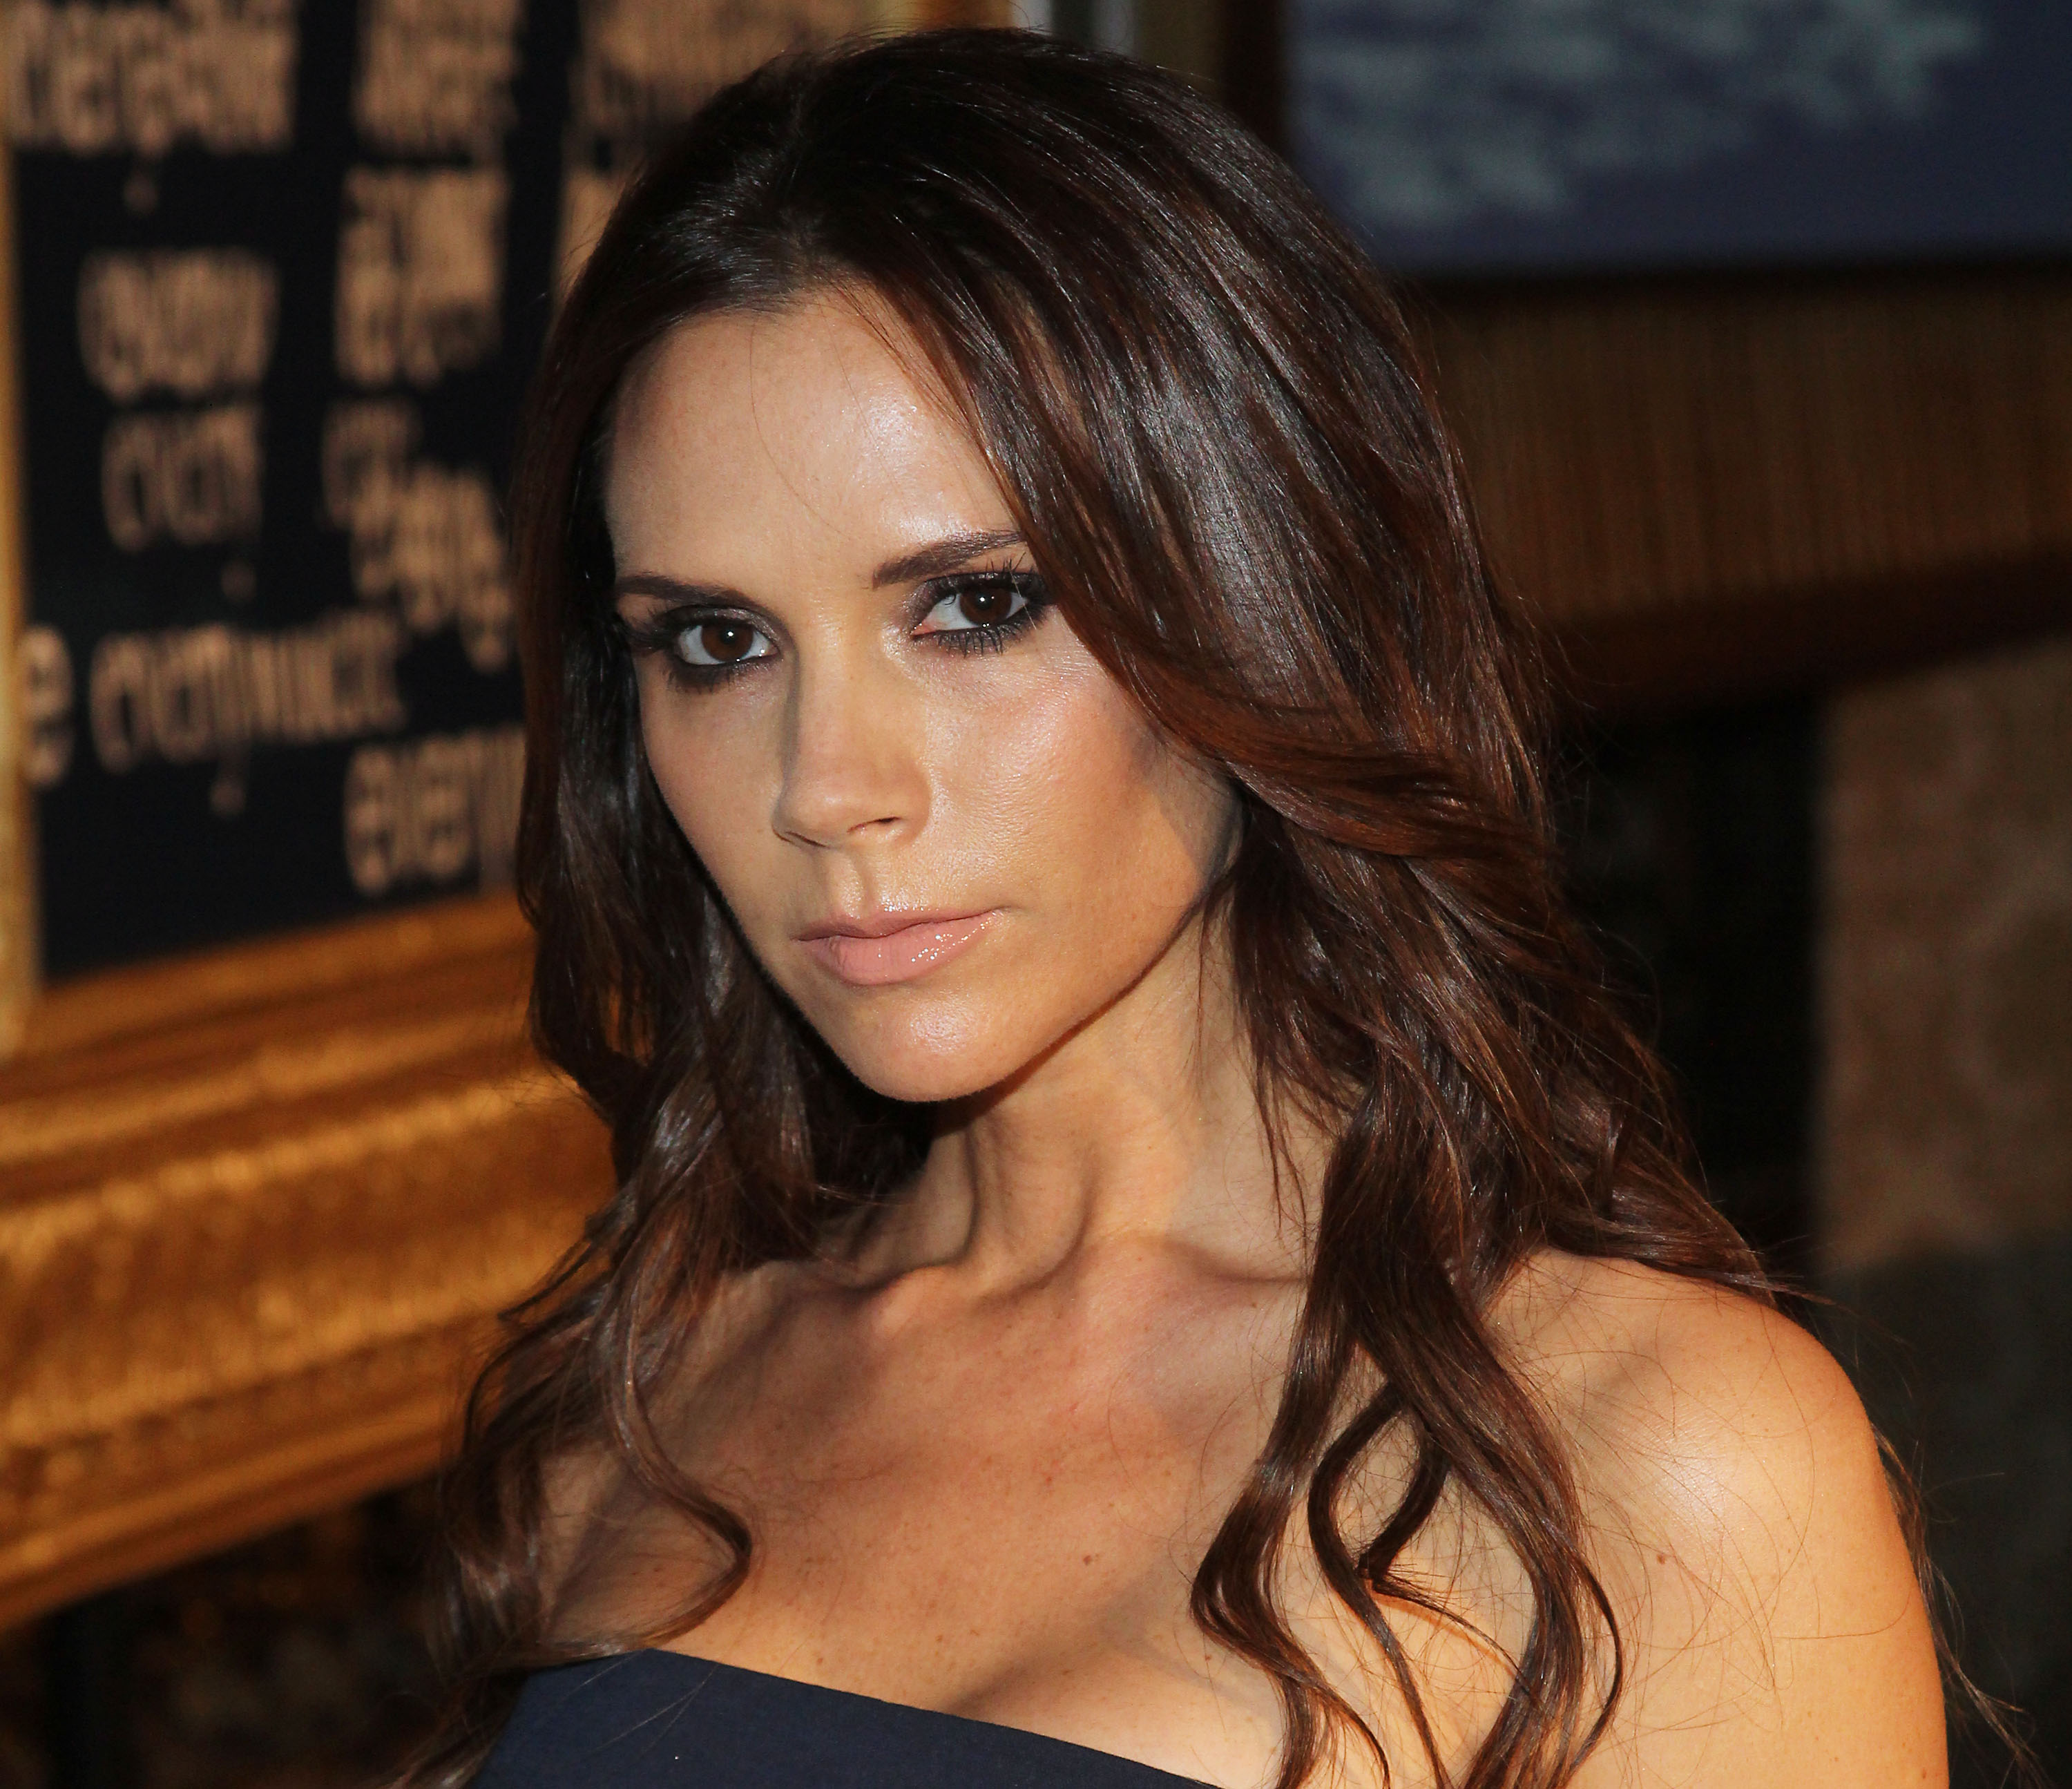 NEW YORK, NY - NOVEMBER 14: Victoria Beckham attends the 2011 WWD Apparel & Retail CEO Summit at The Plaza Hotel on November 14, 2011 in New York City. (Photo by Rob Kim/Getty Images)